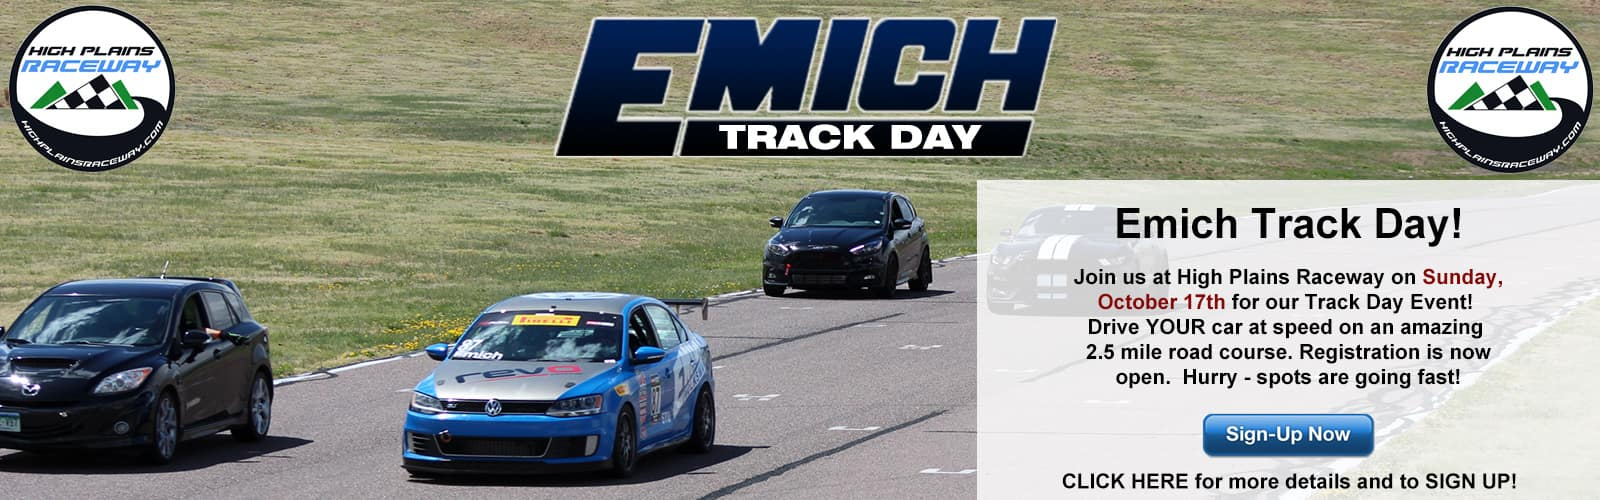 Emich Track Day - October 17, 2021!